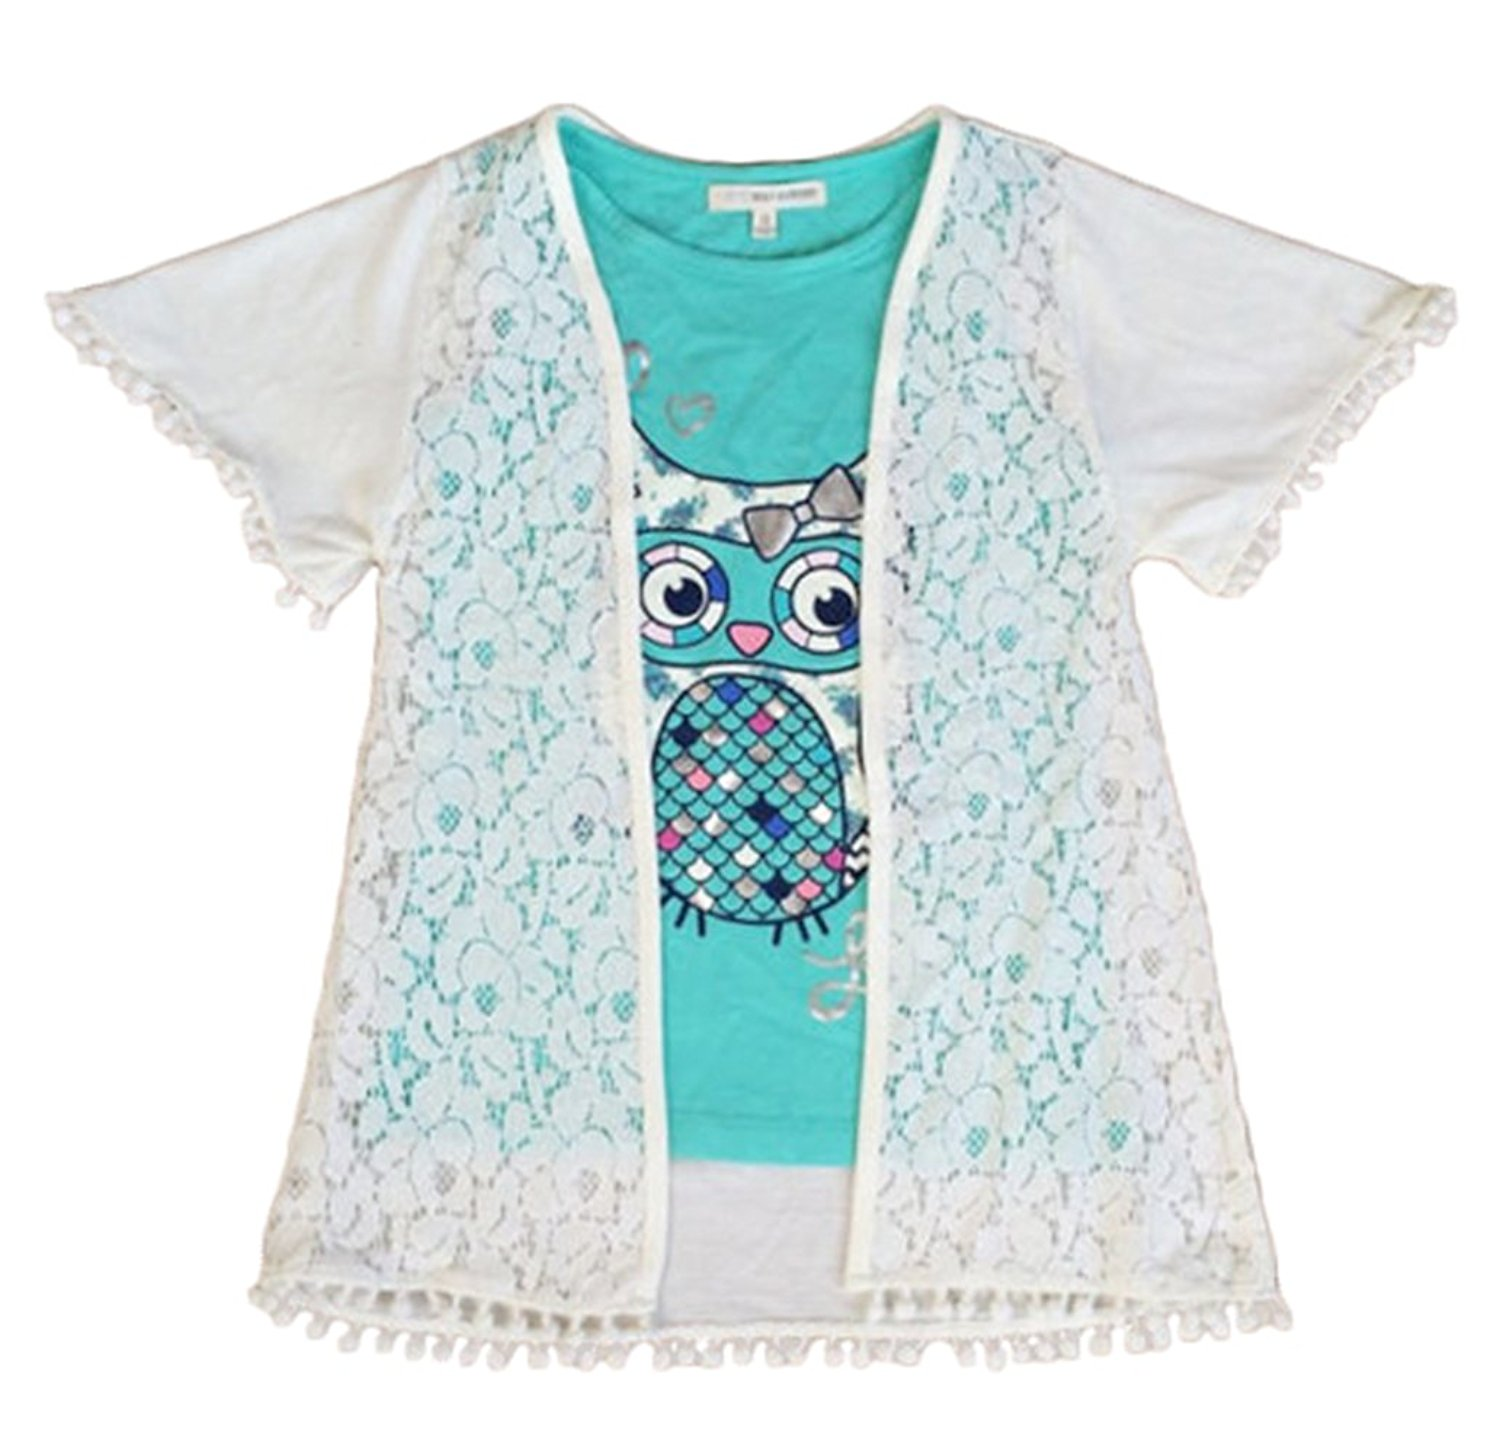 66329665595f9 Get Quotations · Girls Shirt Set 2pc Tops Lace Blouse Owl Shirts